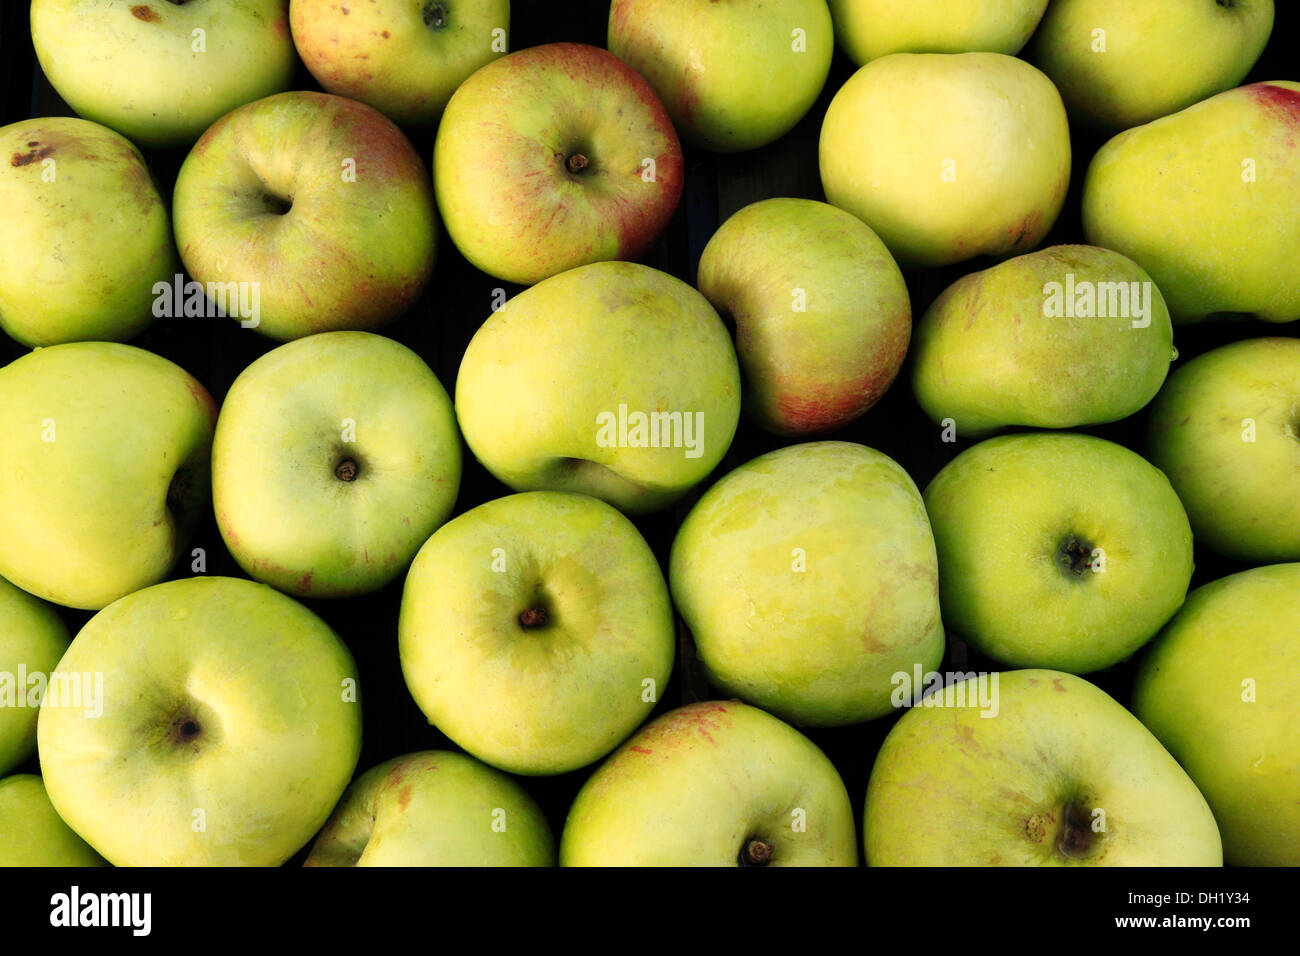 Apple 'Peasegood's Nonsuch', farm shop display, apples UK - Stock Image